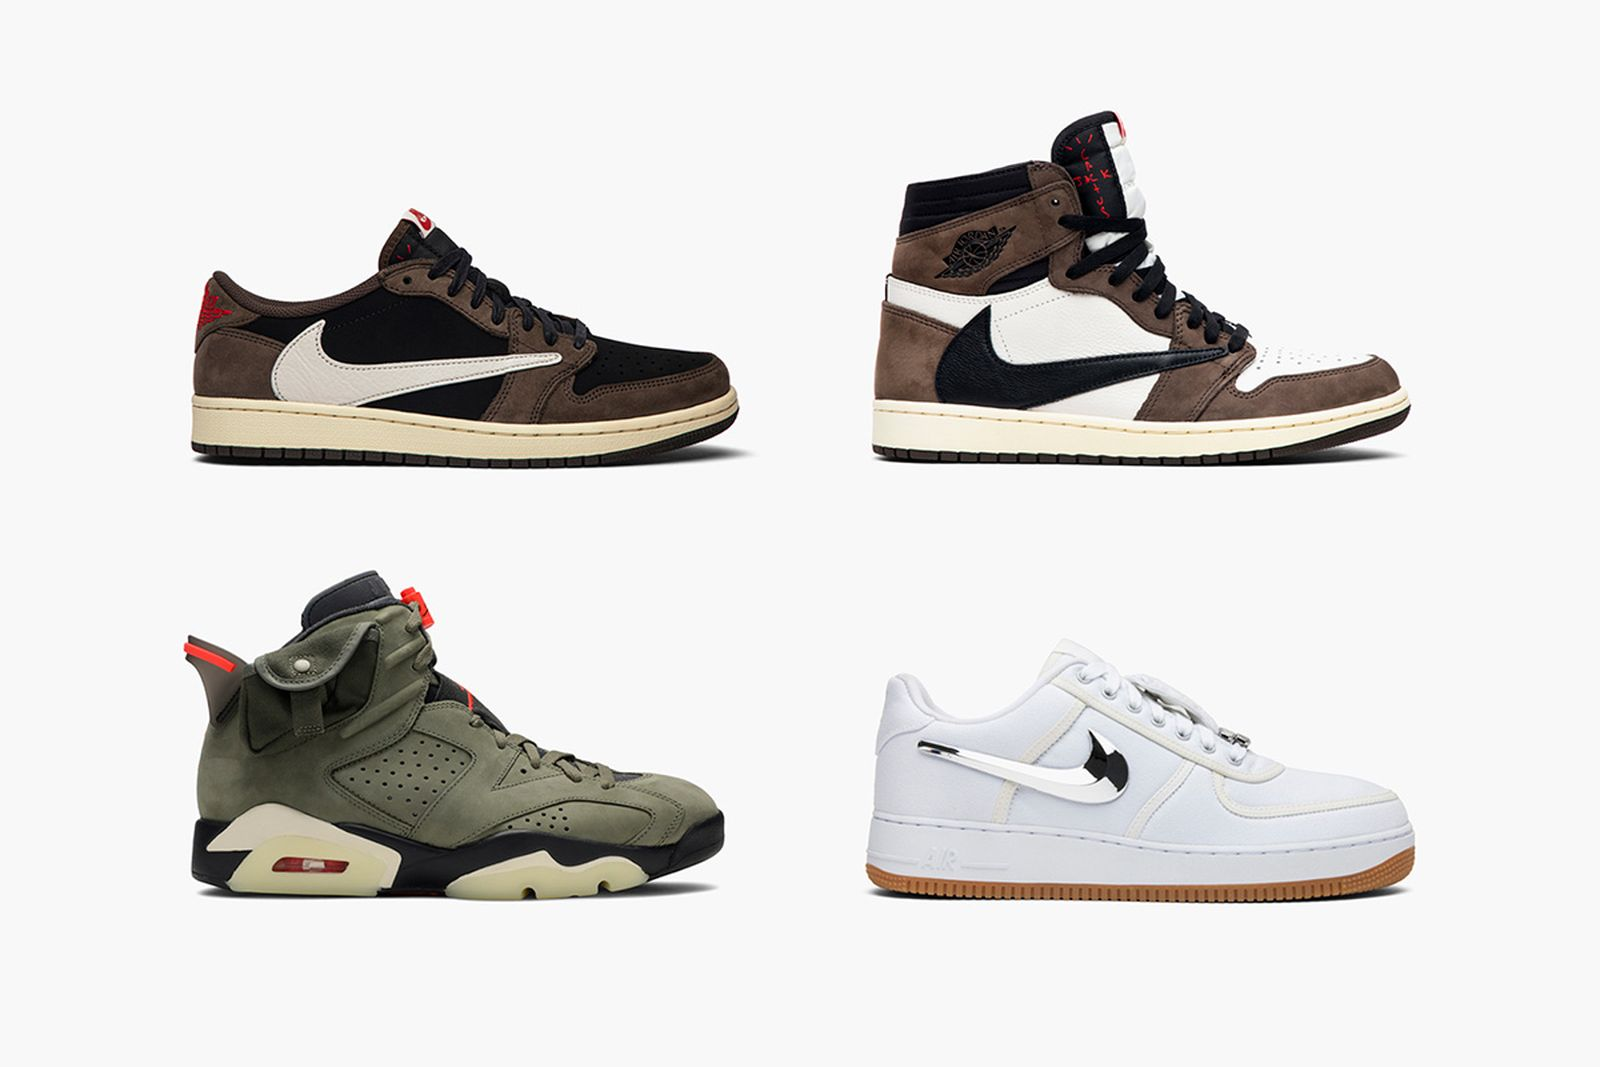 pecado simplemente cuenca  Cop All Travis Scott x Nike Sneaker Releases at GOAT